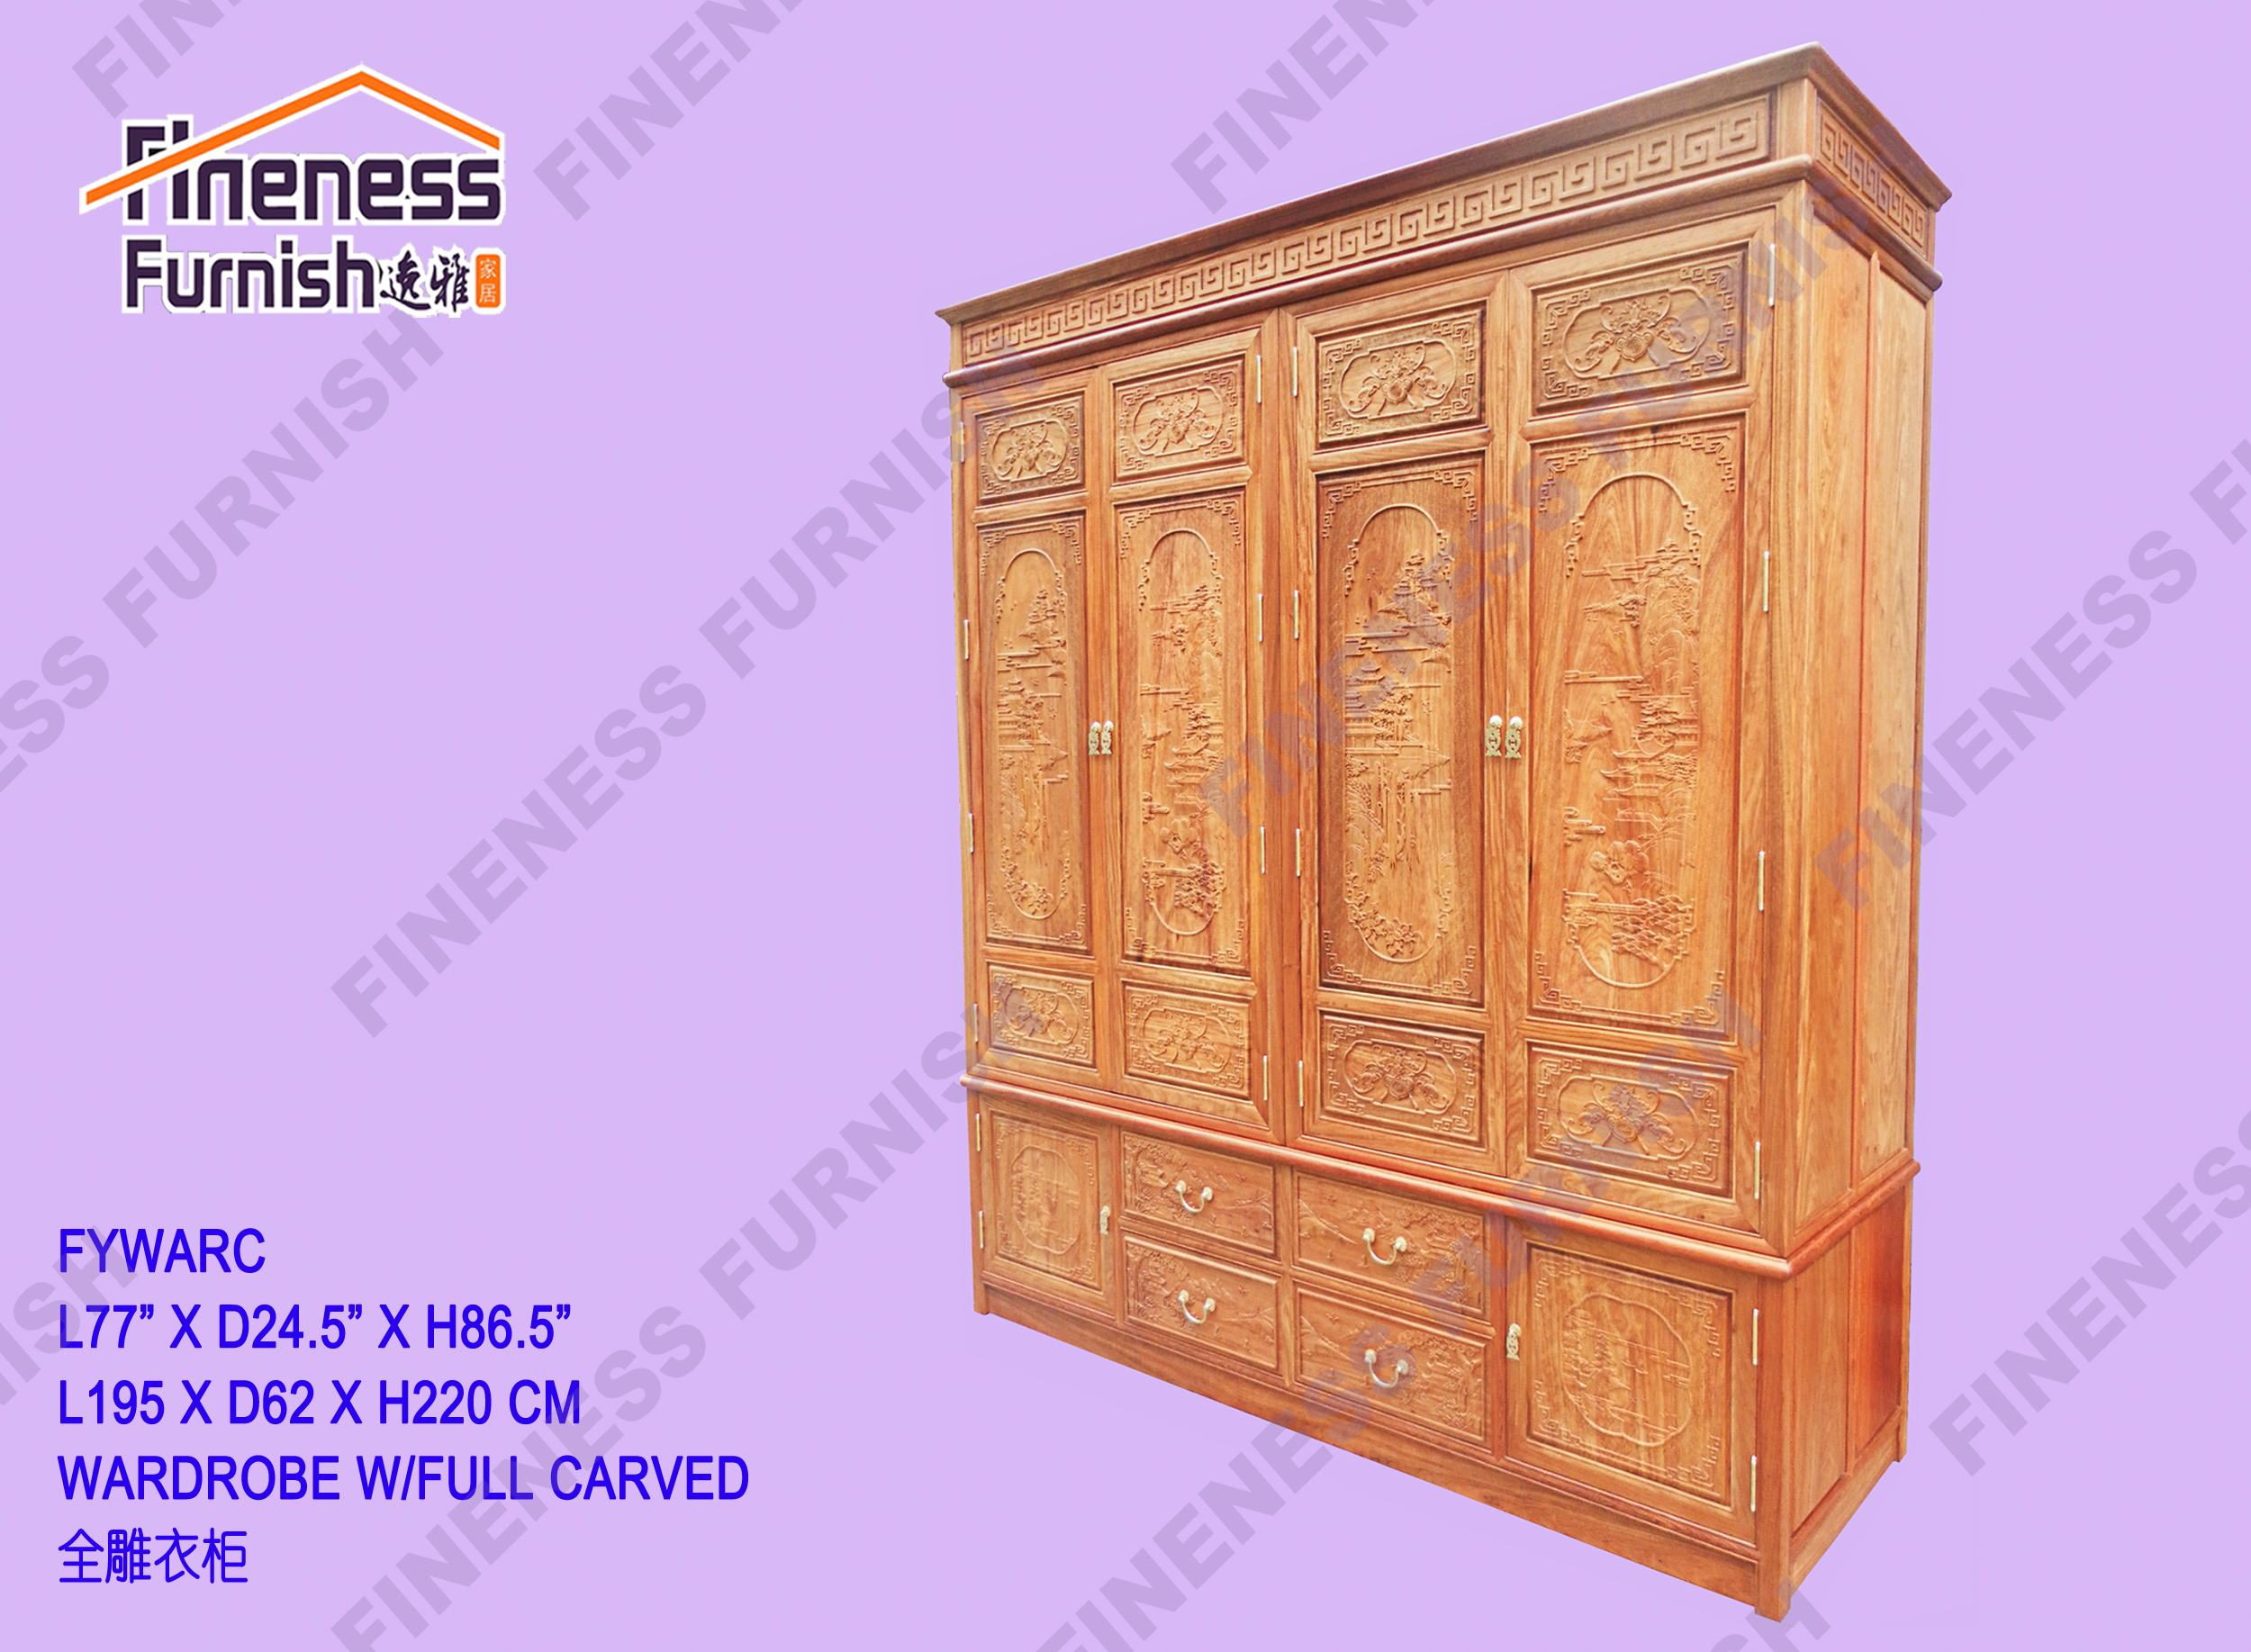 Wardrobe W/Full Carved